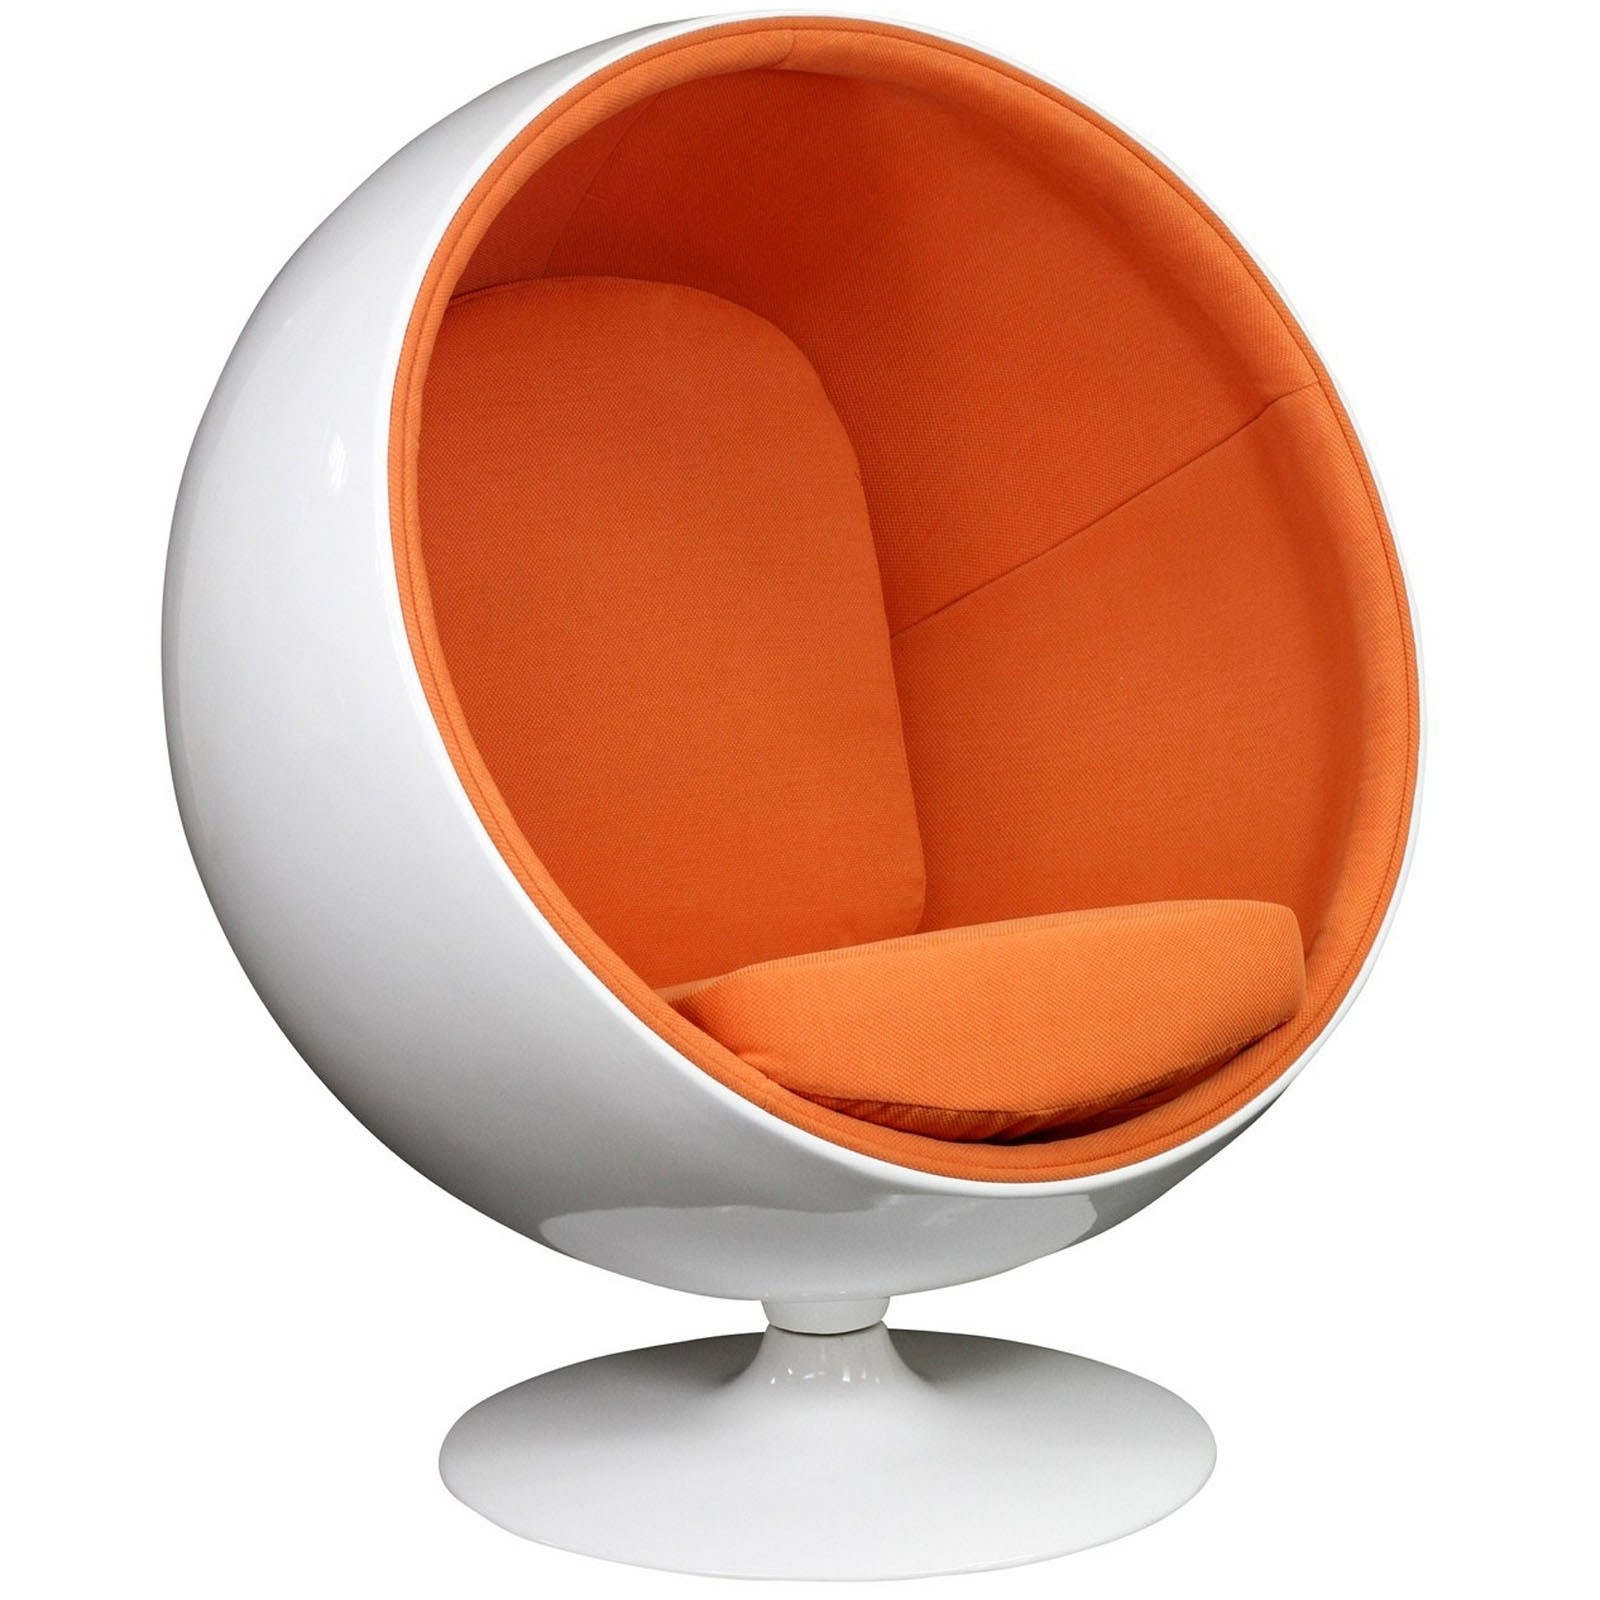 Kaddur Lounge Chair - Orange